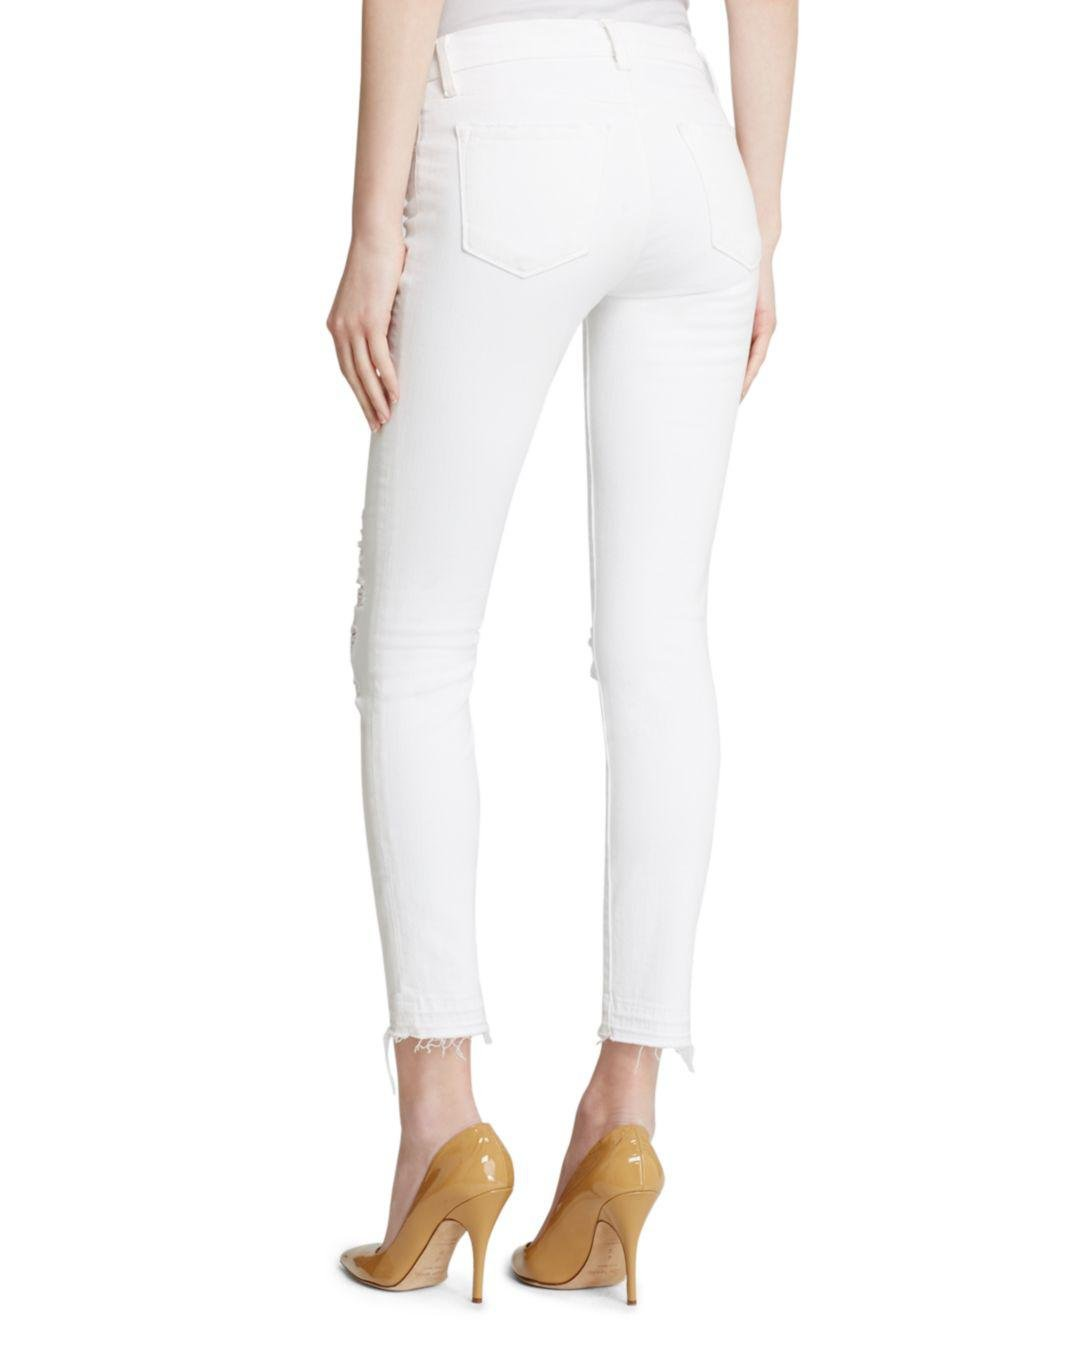 J Brand Denim Jeans - Low Rise Ankle Skinny In Demented in White